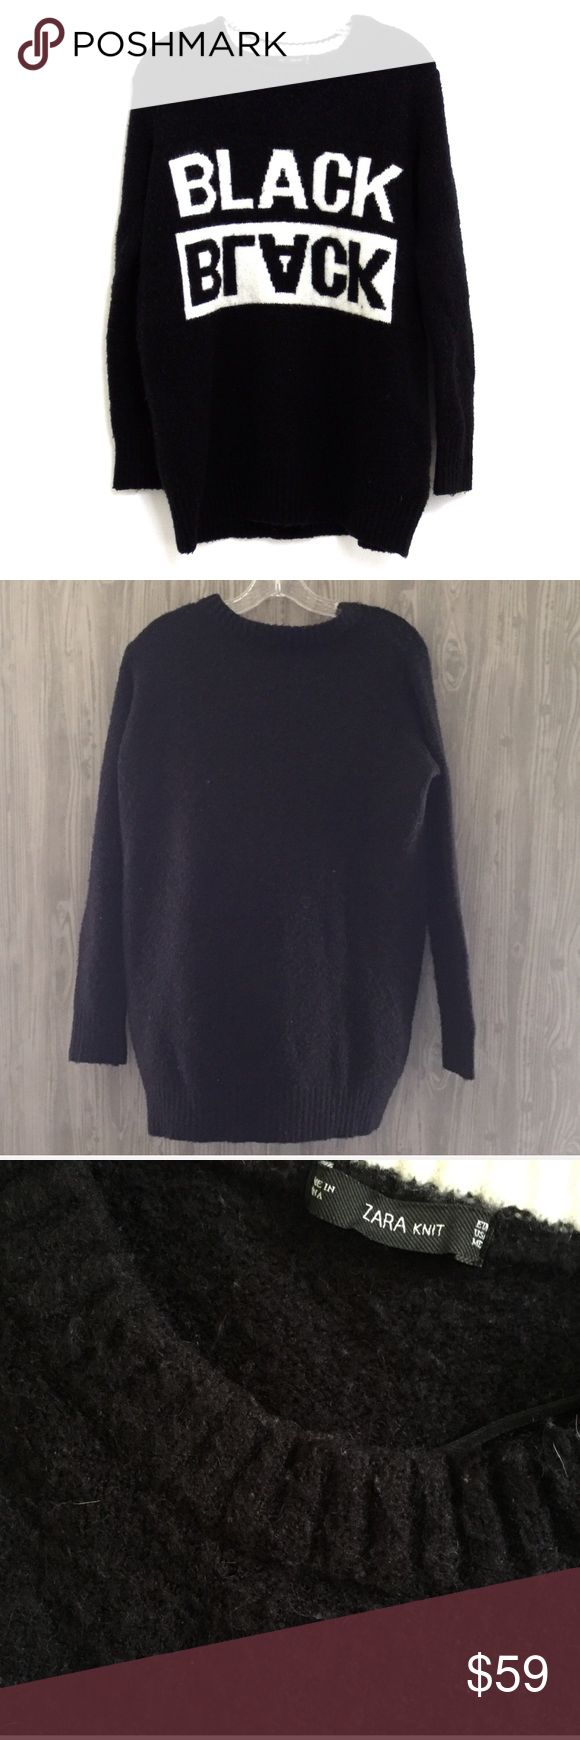 "Zara Black Graphic Mohair Sweater Top Medium Very rare and extremely hard to find (Limited Edition) Features soft mohair, oversized and comfortable fit. Round neck, long sleeved. (Please note: The inside tag with material and care has been removed; minor pilling) Really great condition! Length 29"" / Sleeve 19"" / Chest 20"" (First pic is a stock to show fit) Zara Sweaters Crew & Scoop Necks"